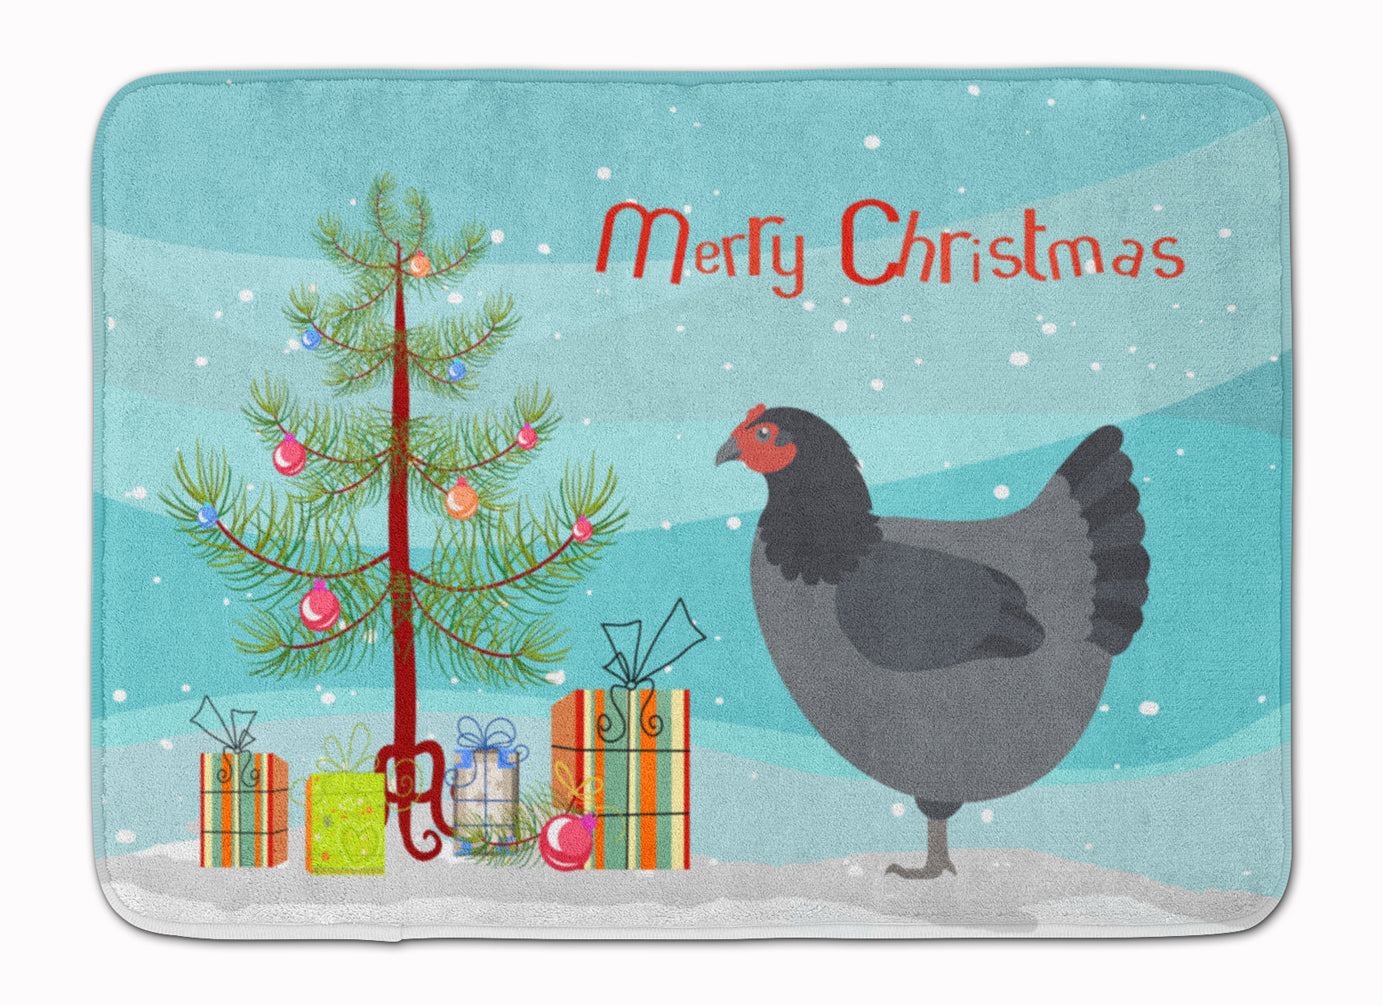 Jersey Giant Chicken Christmas Machine Washable Memory Foam Mat BB9202RUG by Caroline's Treasures